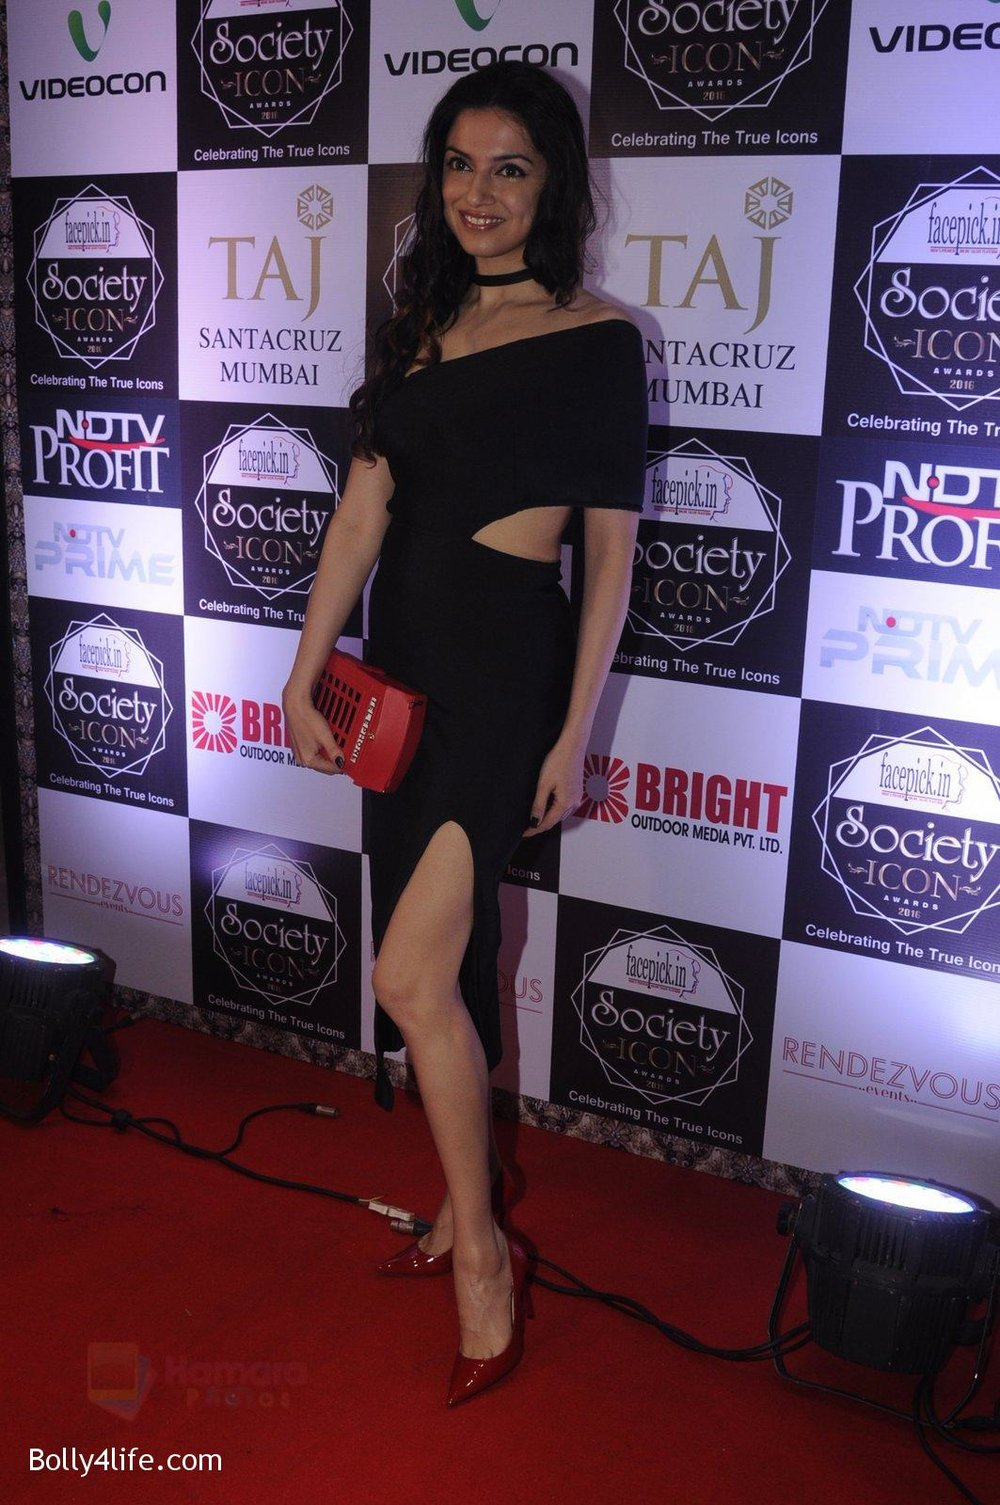 Divya-Kumar-at-Society-Icon-Awards-on-2nd-Oct-2016-55.jpg